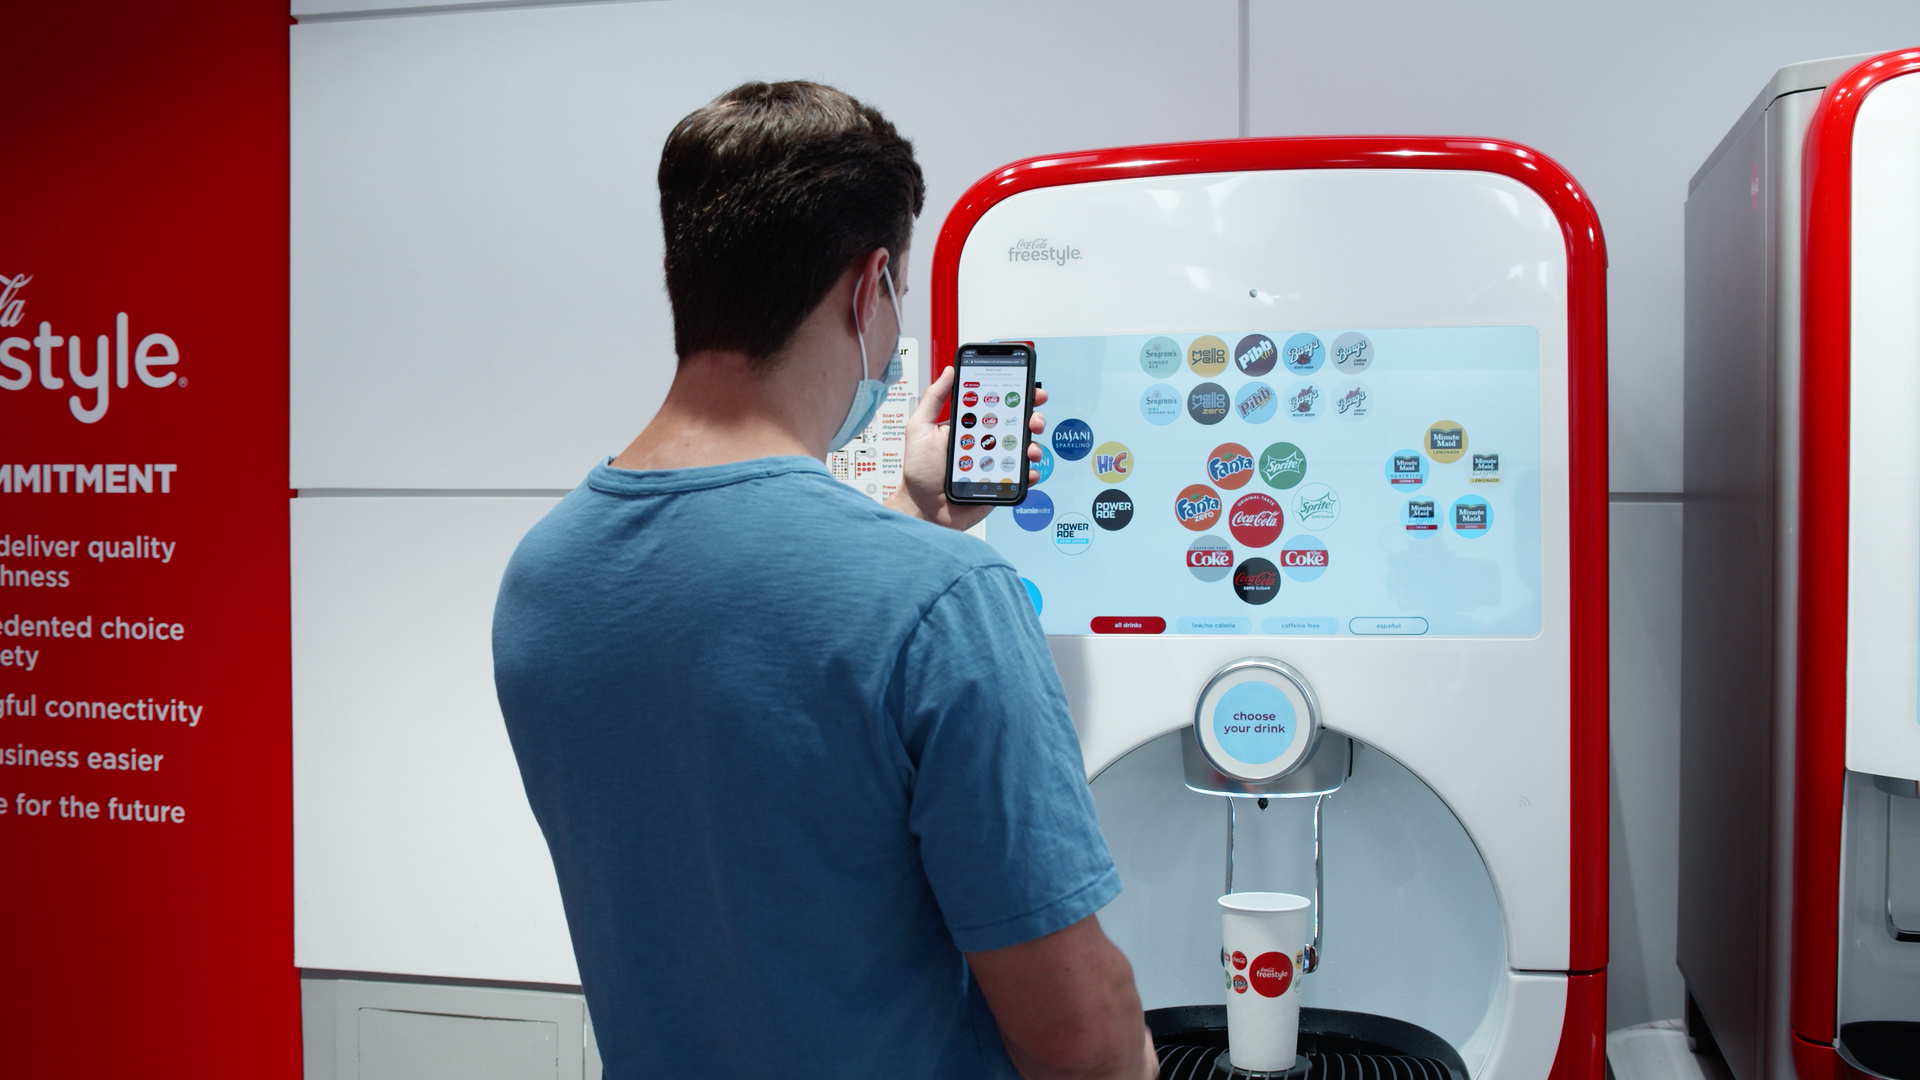 Coca-Cola and AWS reimagine the future of contactless experiences - Image 4